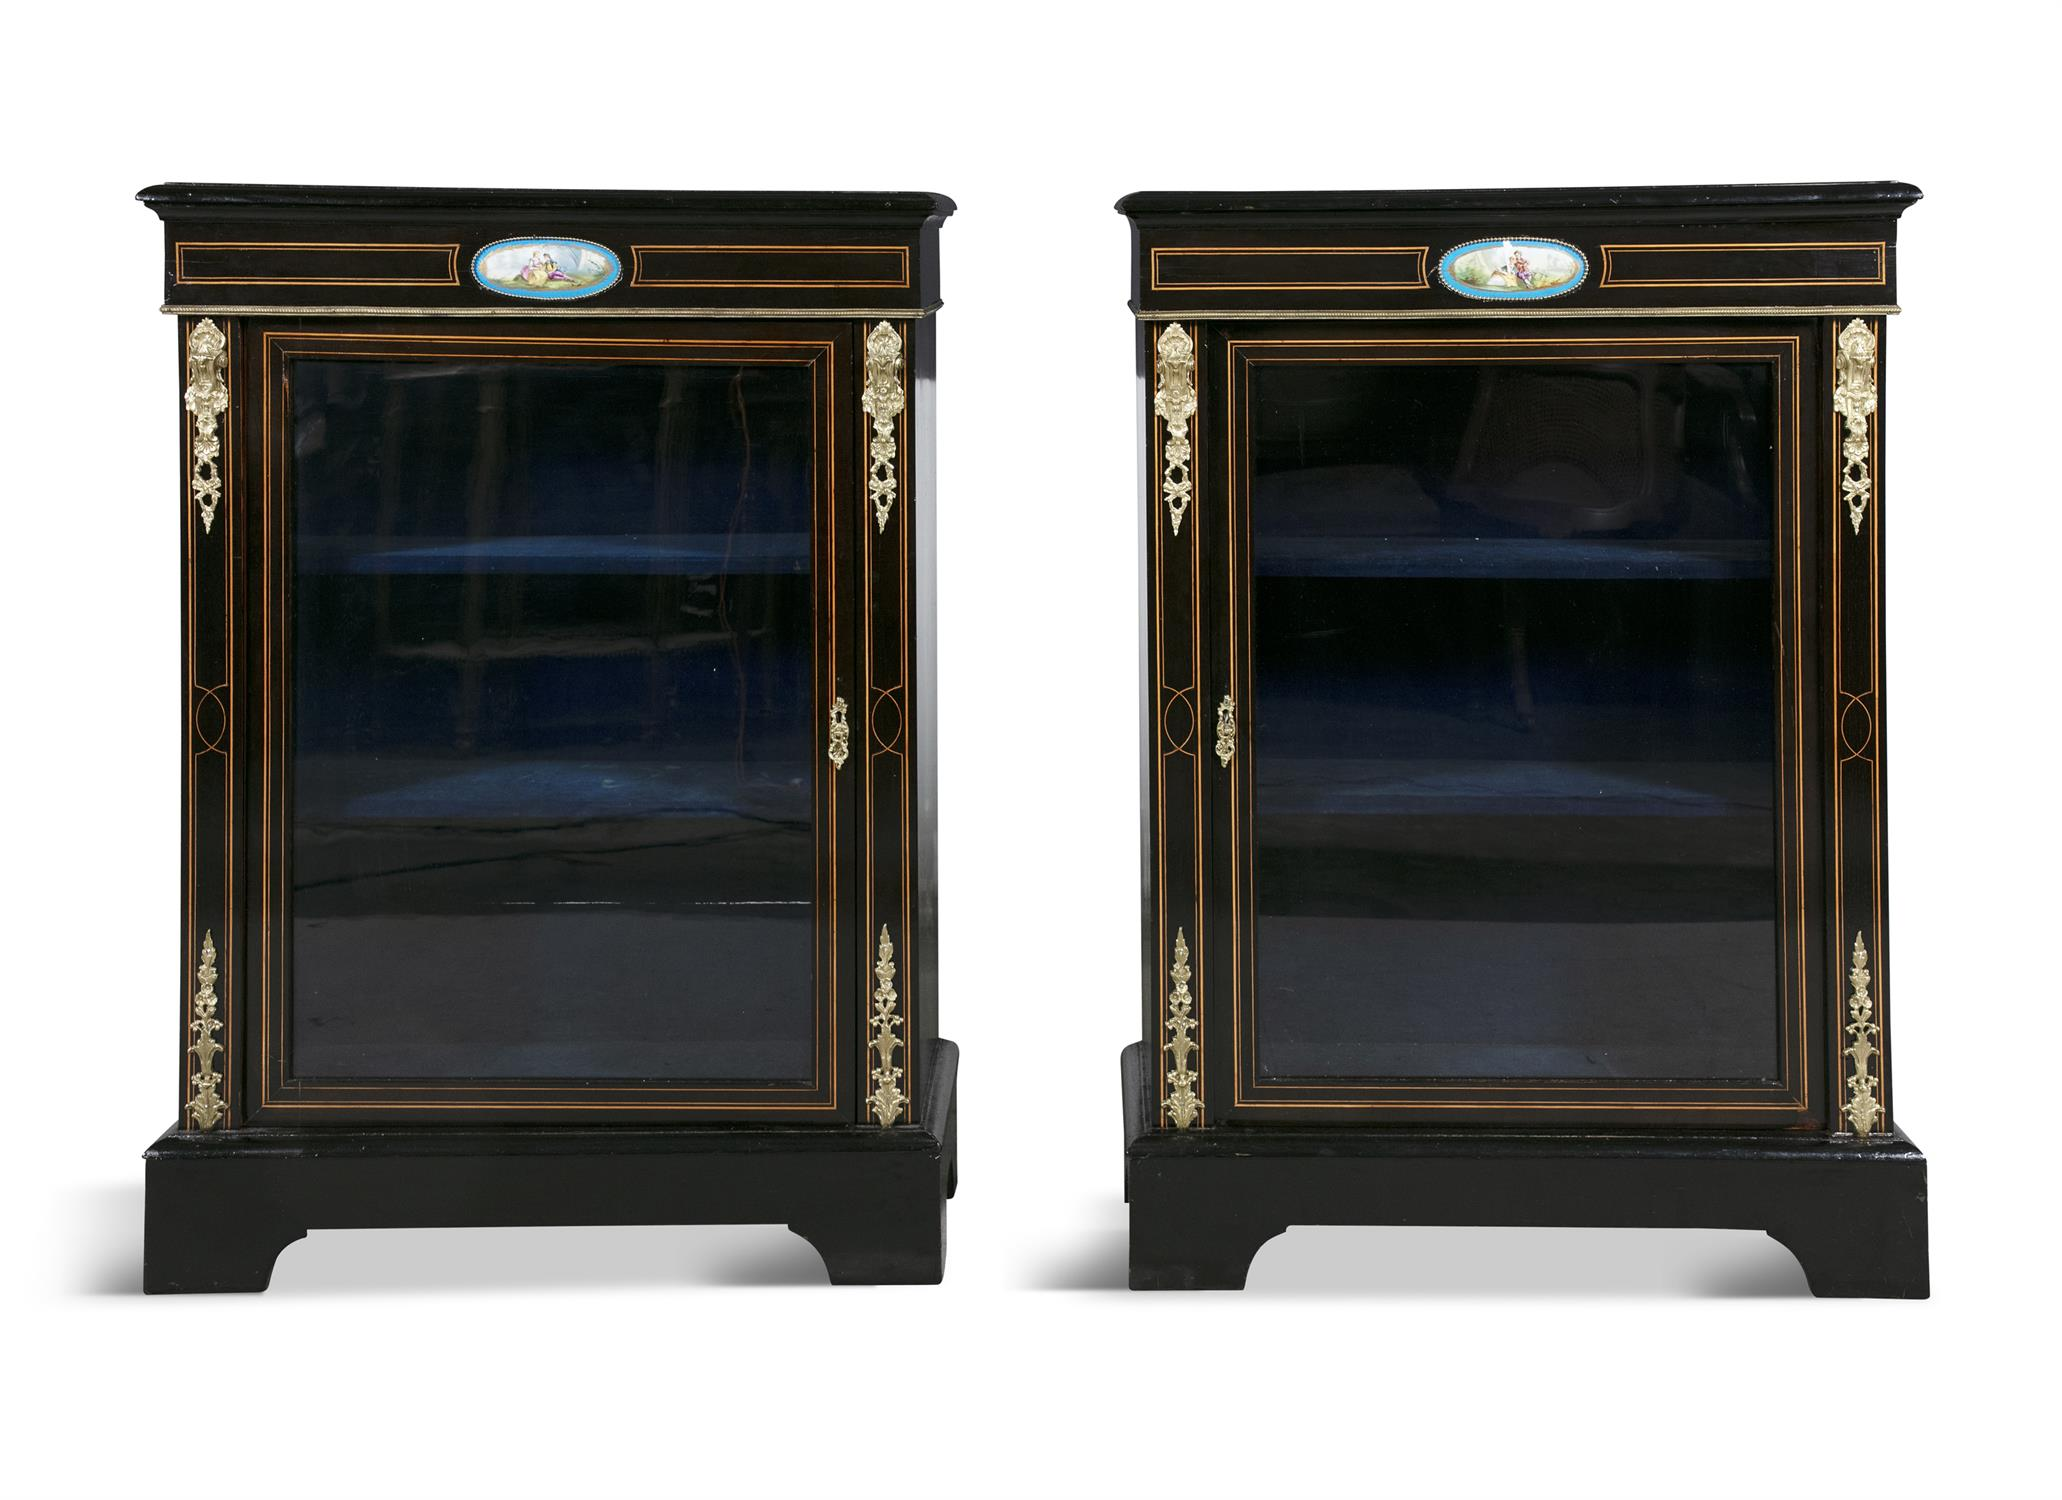 A PAIR OF 19TH CENTURY BRASS MOUNTED EBONISED CABINETS, of rectangular form, the tops with moulded